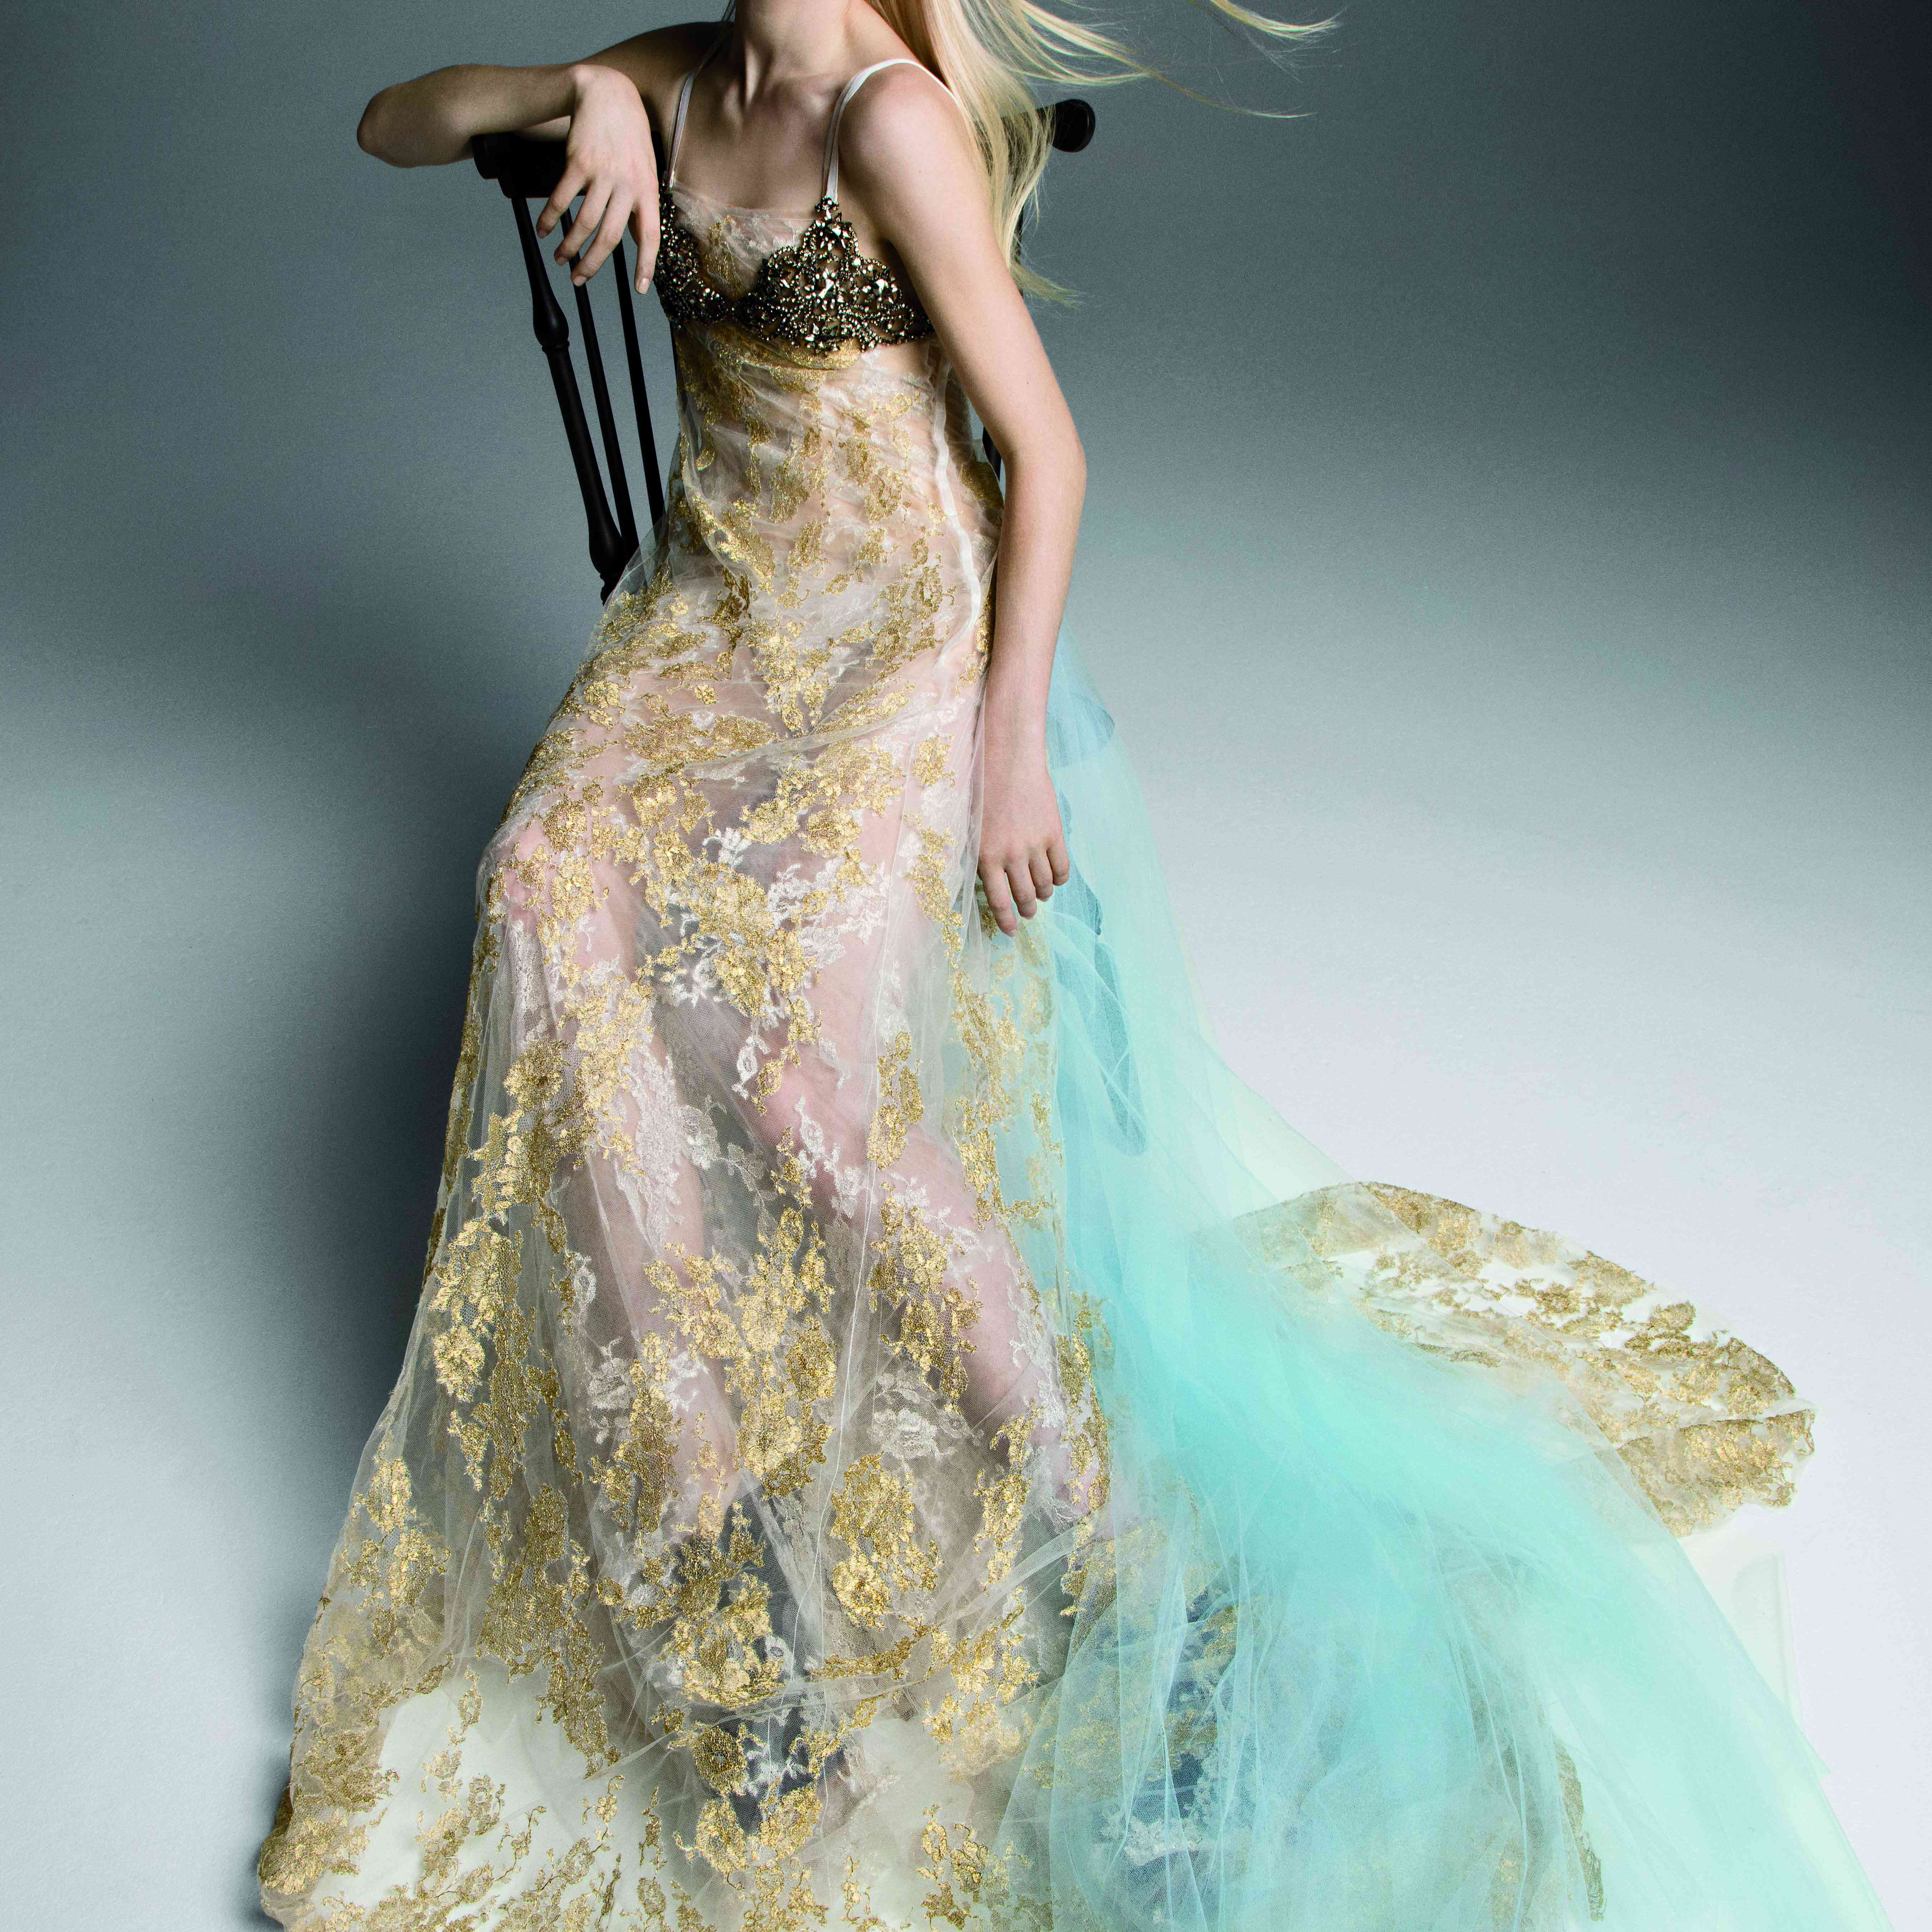 Model in spaghetti strap gown with gold and silver accents and a light blue train